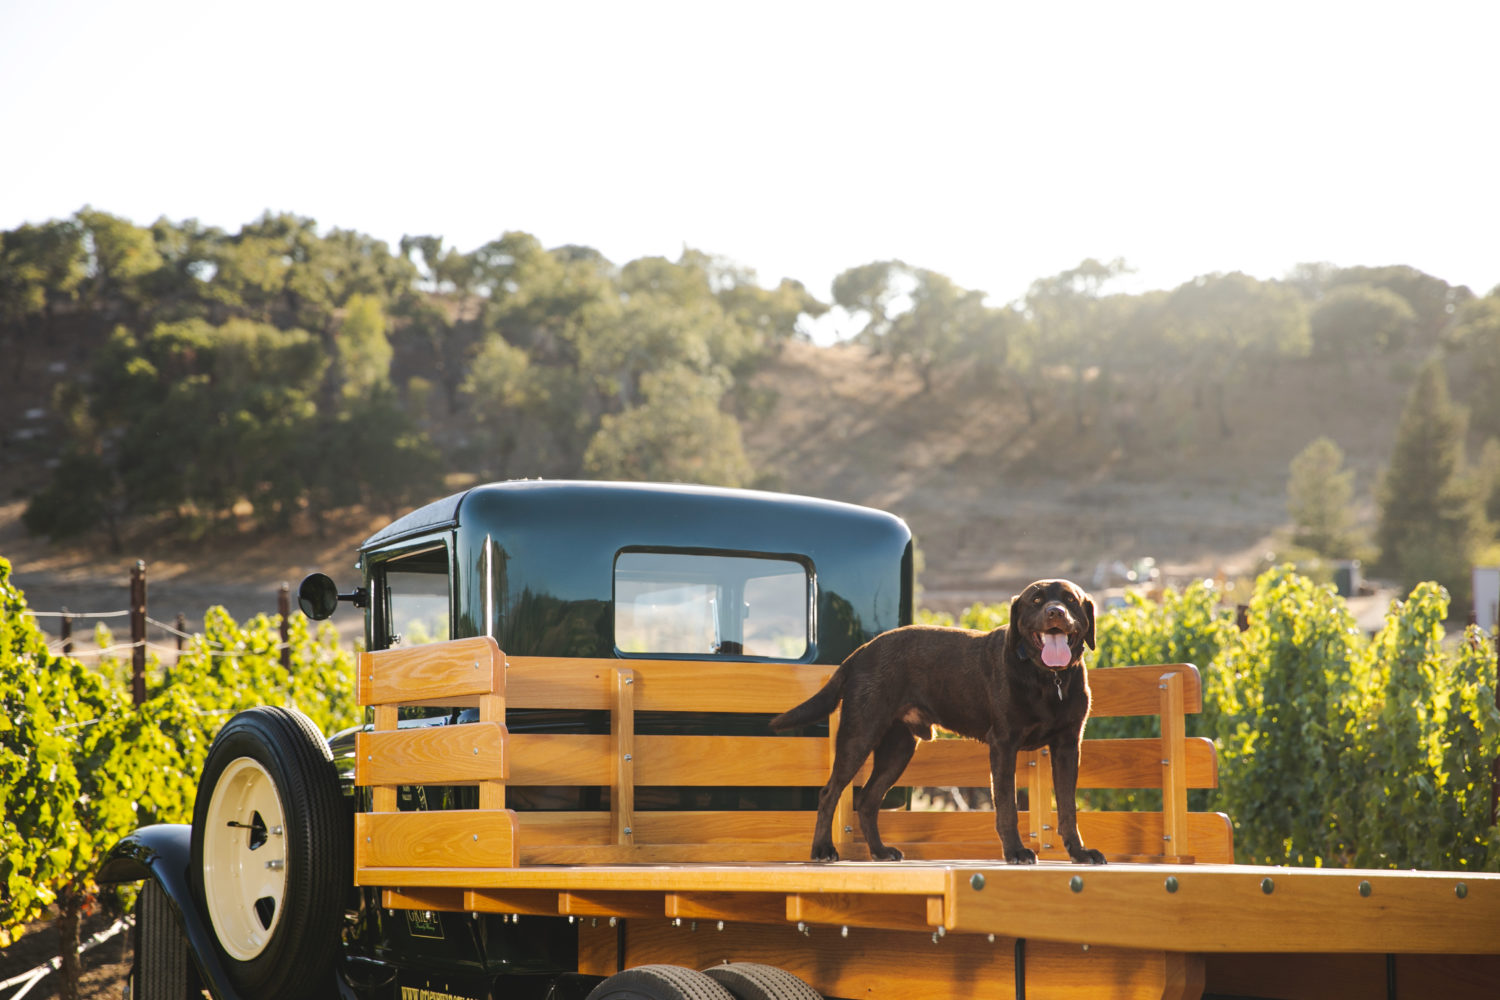 truck with dog in the back in vineyard